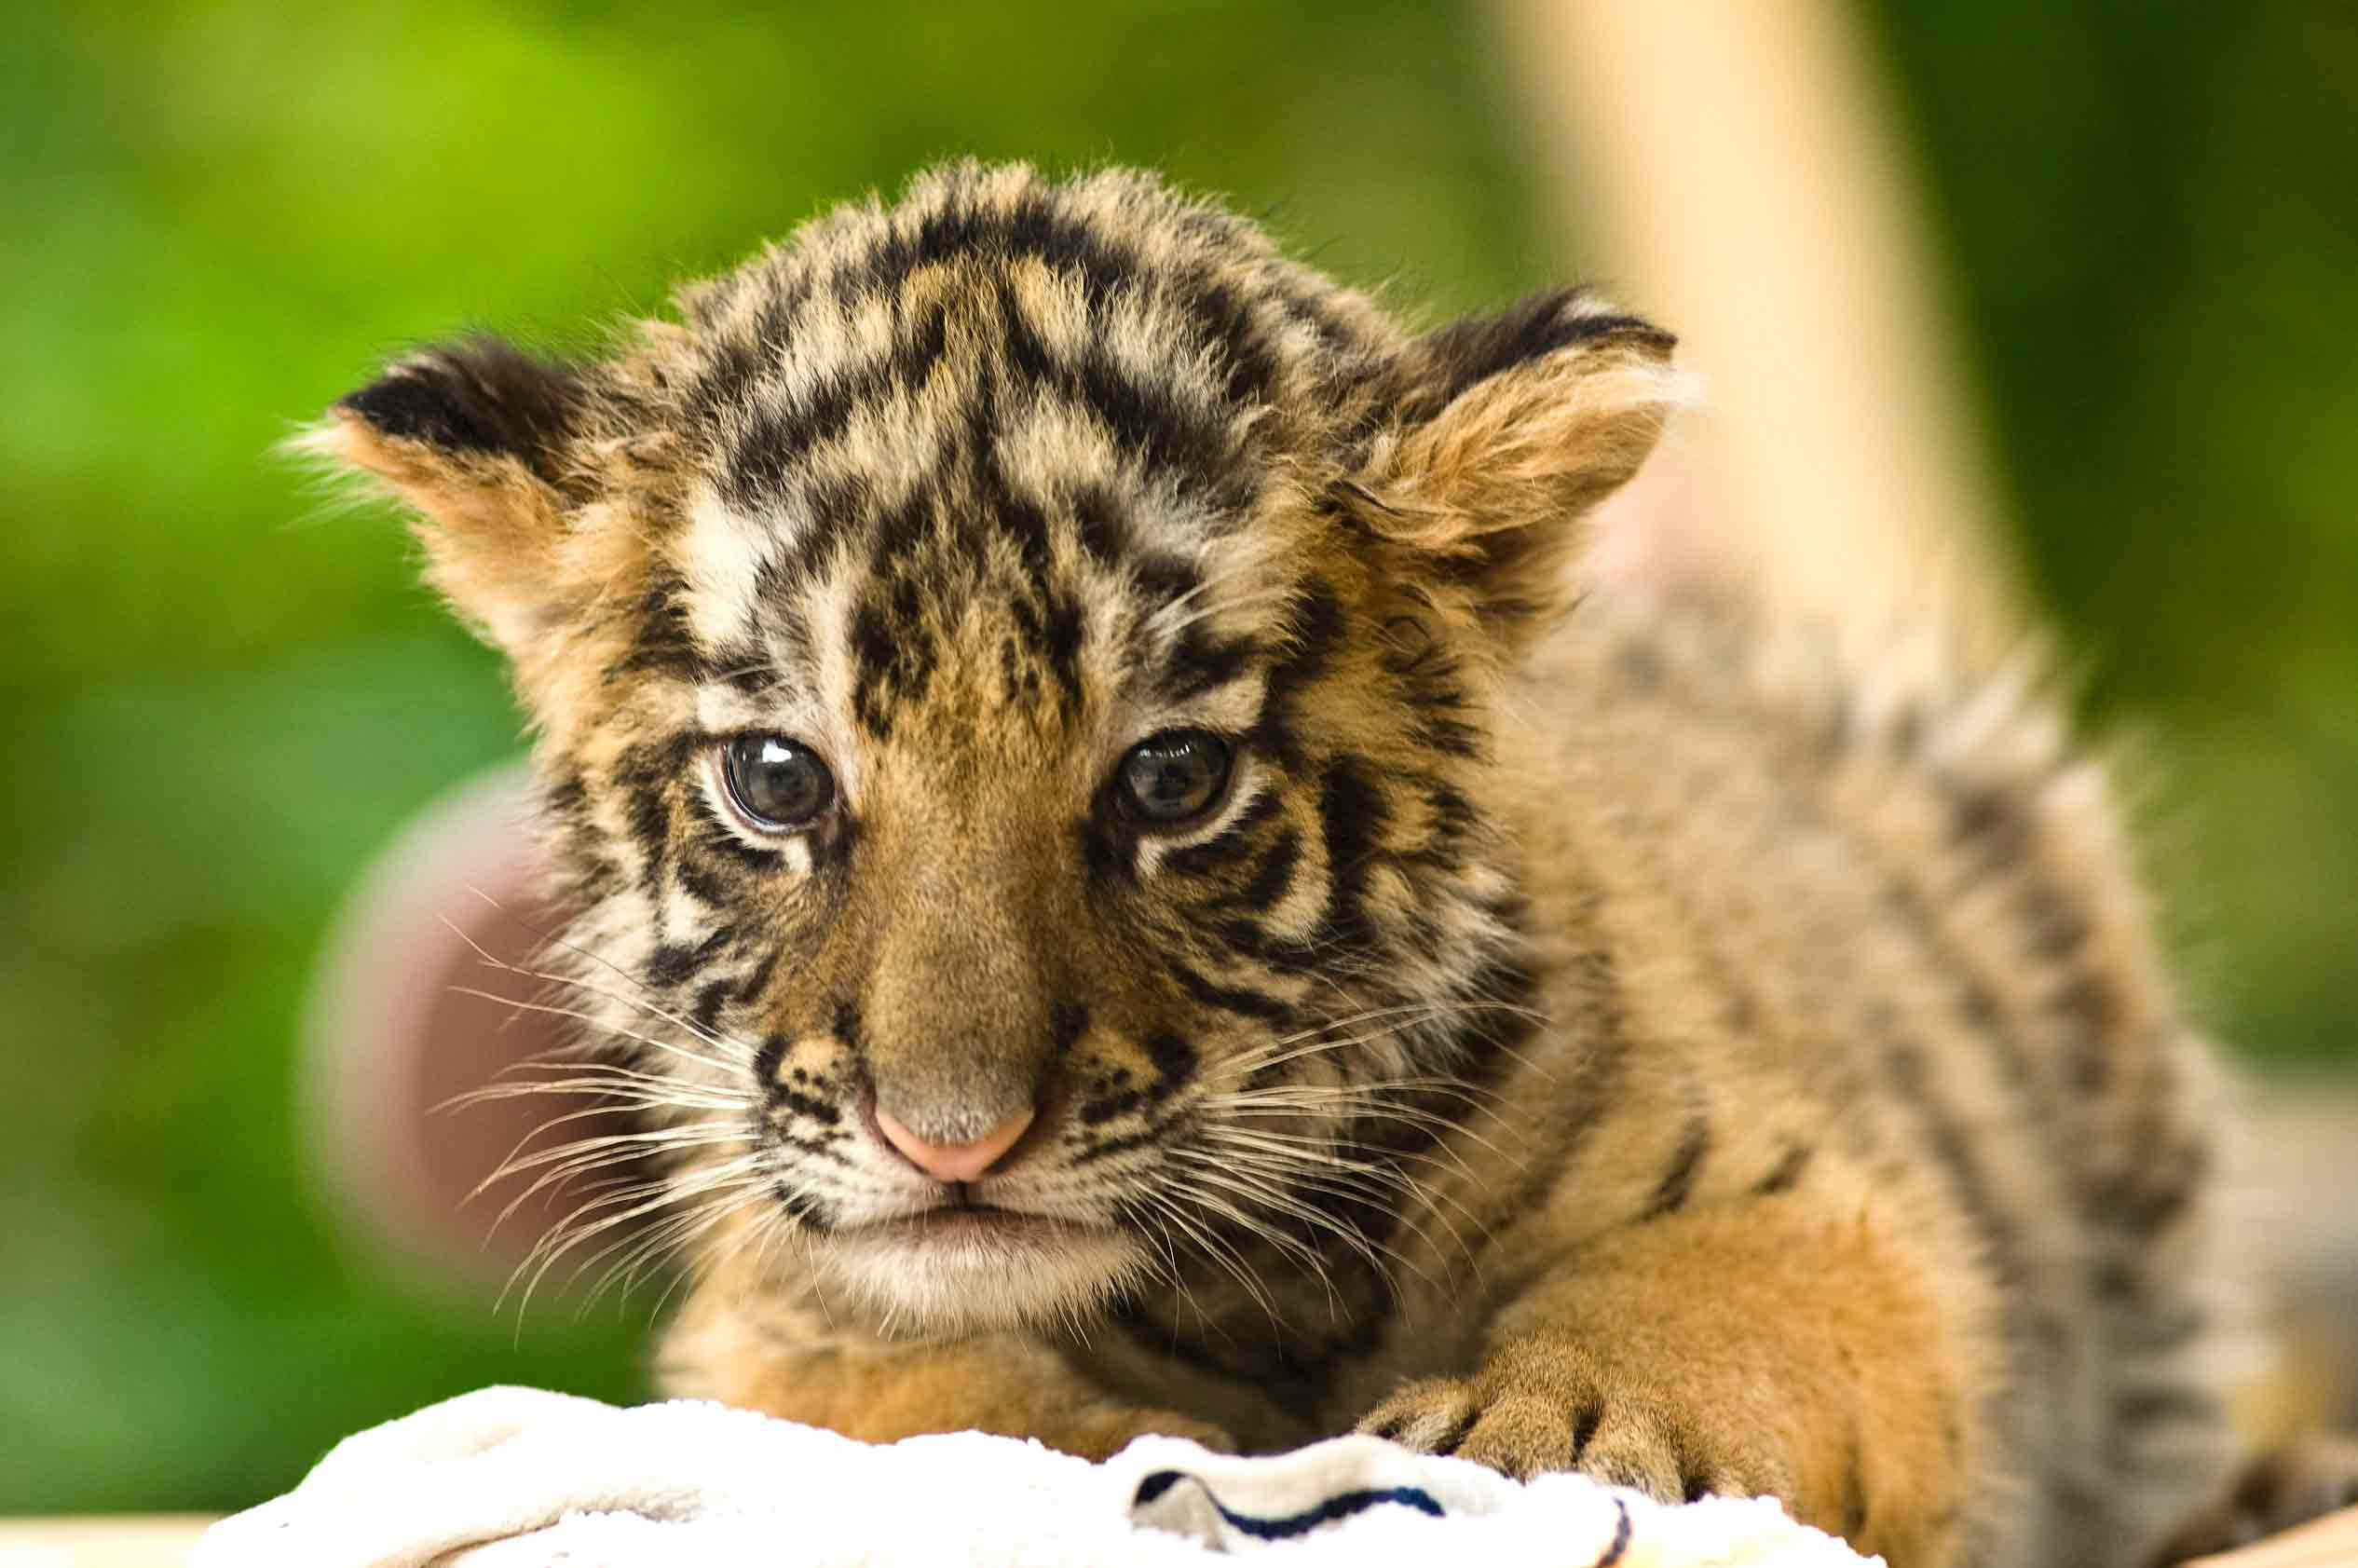 Photos: On Global Tiger Day, a Look at Legendary Animal's ...